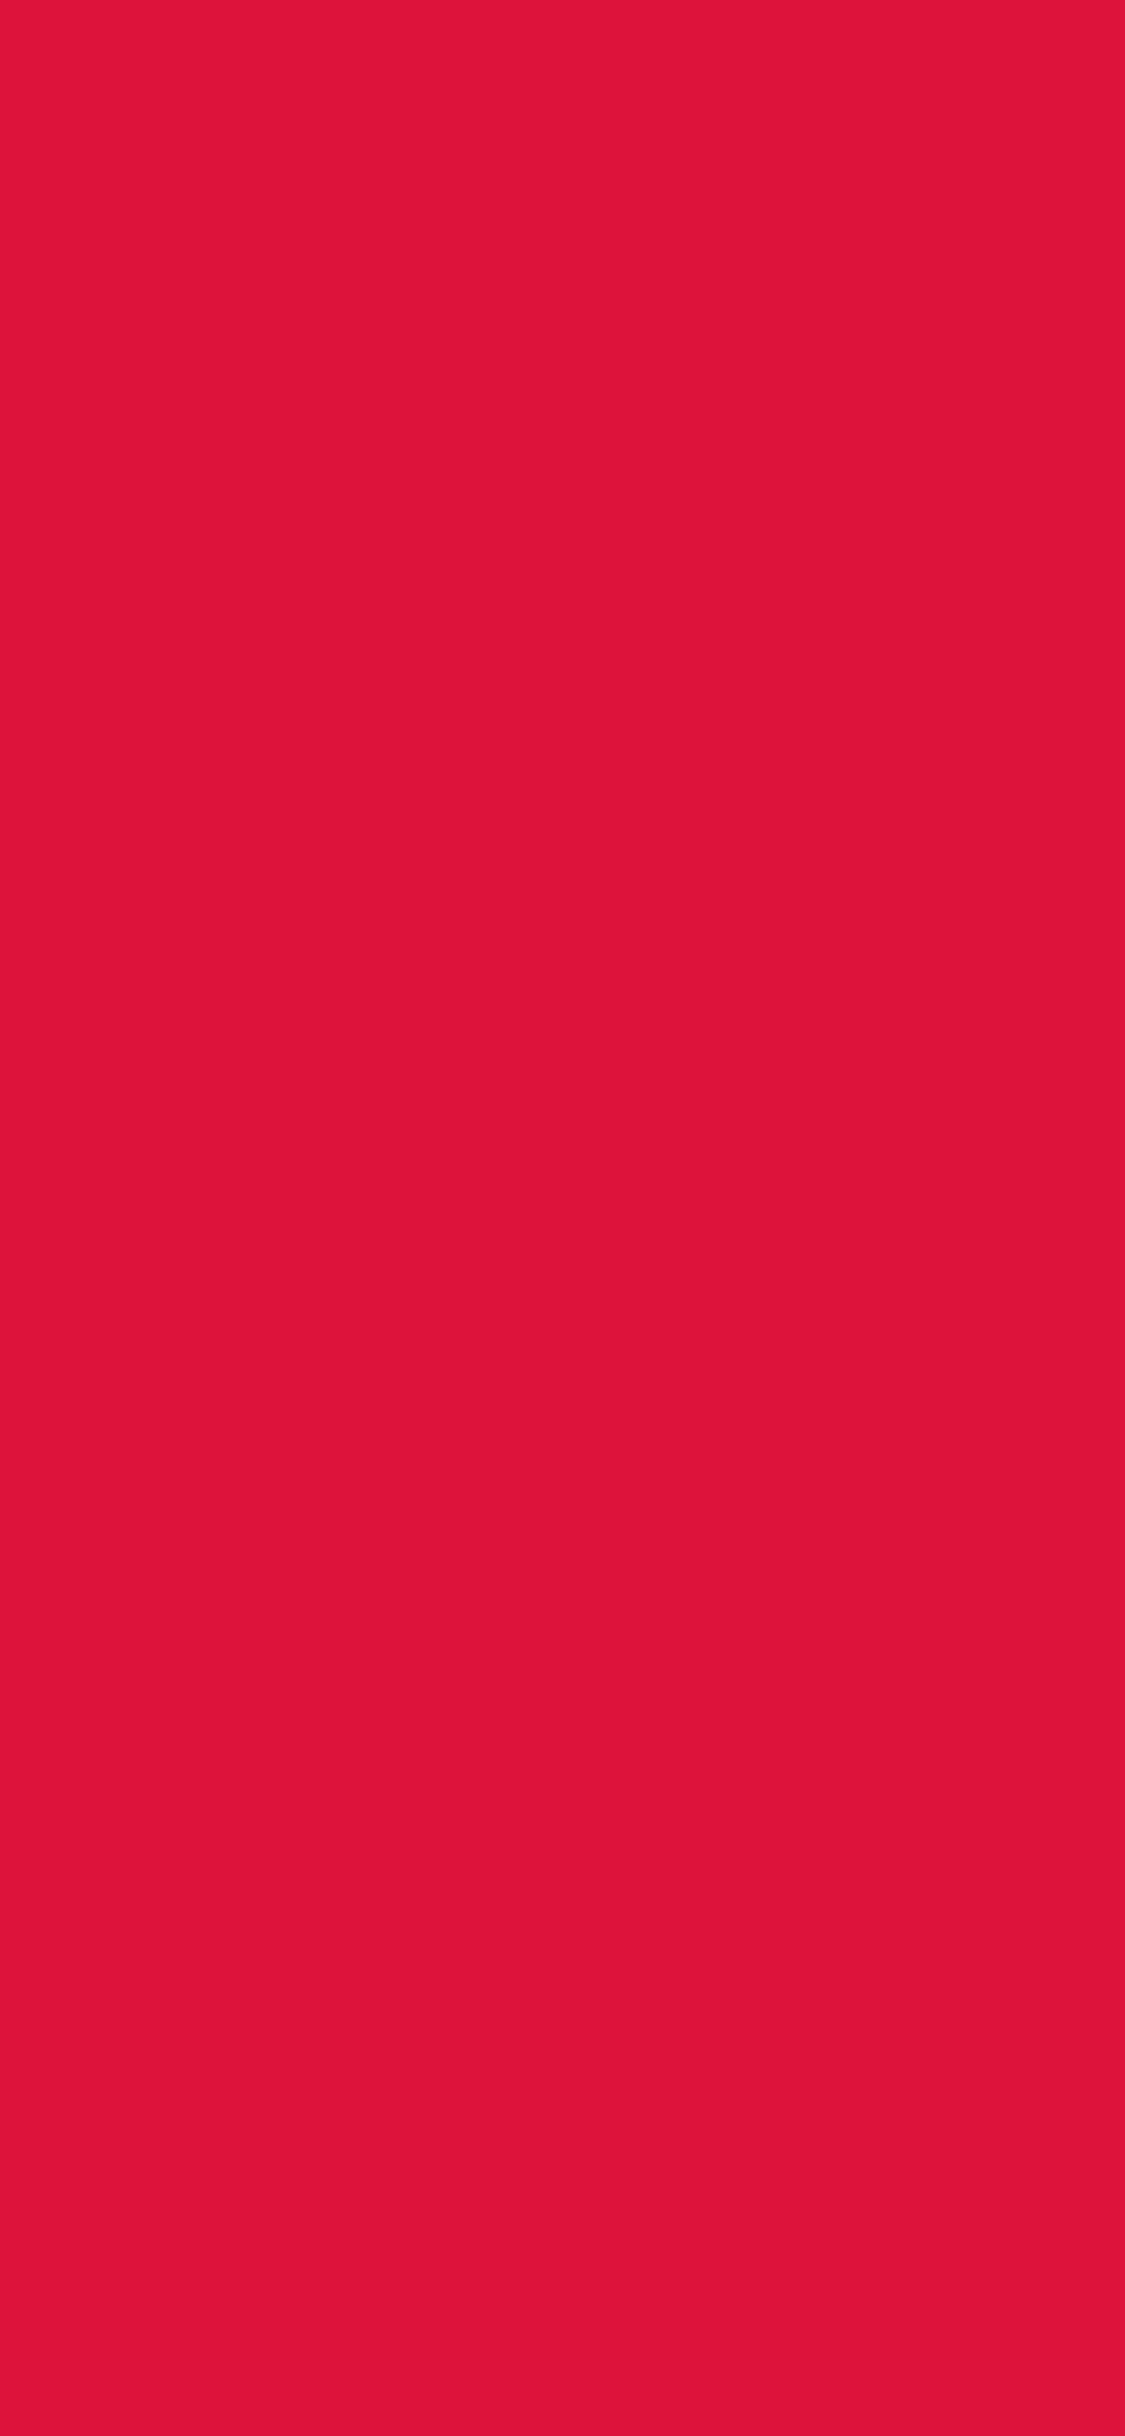 1125x2436 Crimson Solid Color Background